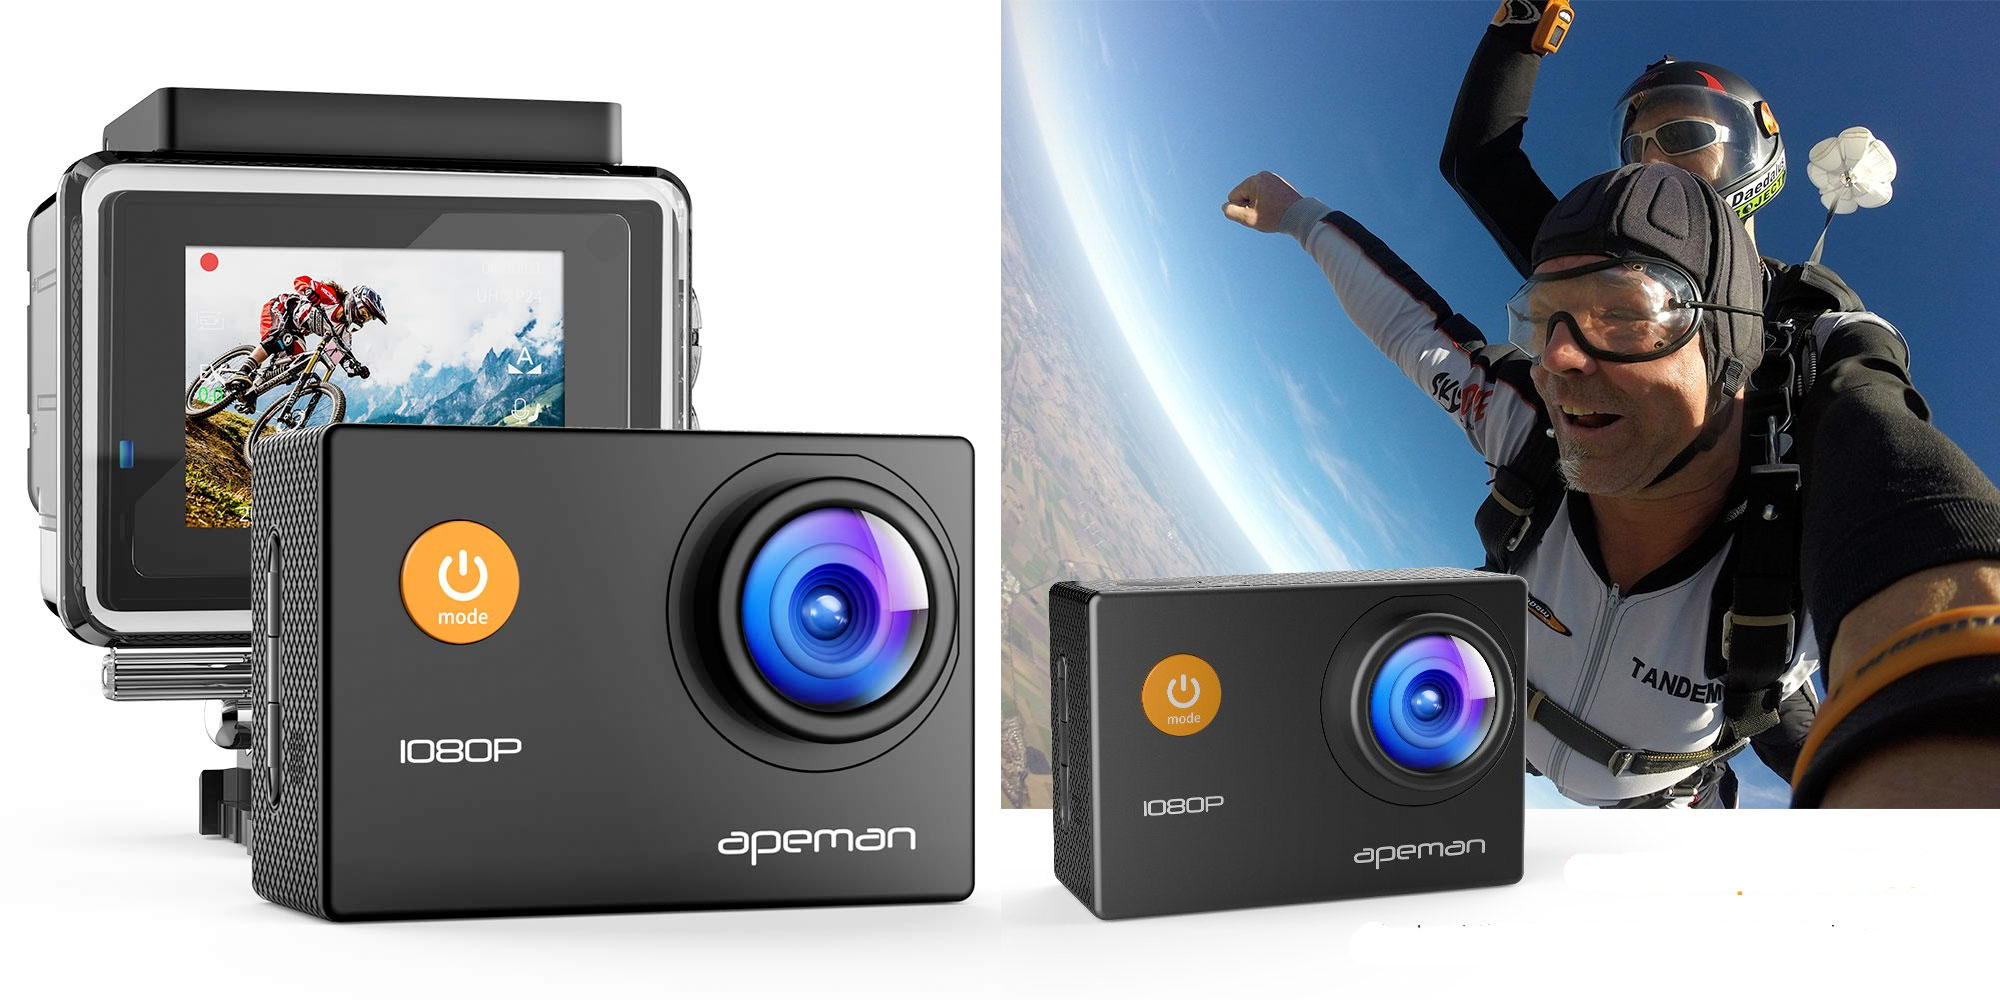 Take this waterproof 1080p action camera on your summer adventures for $30 shipped